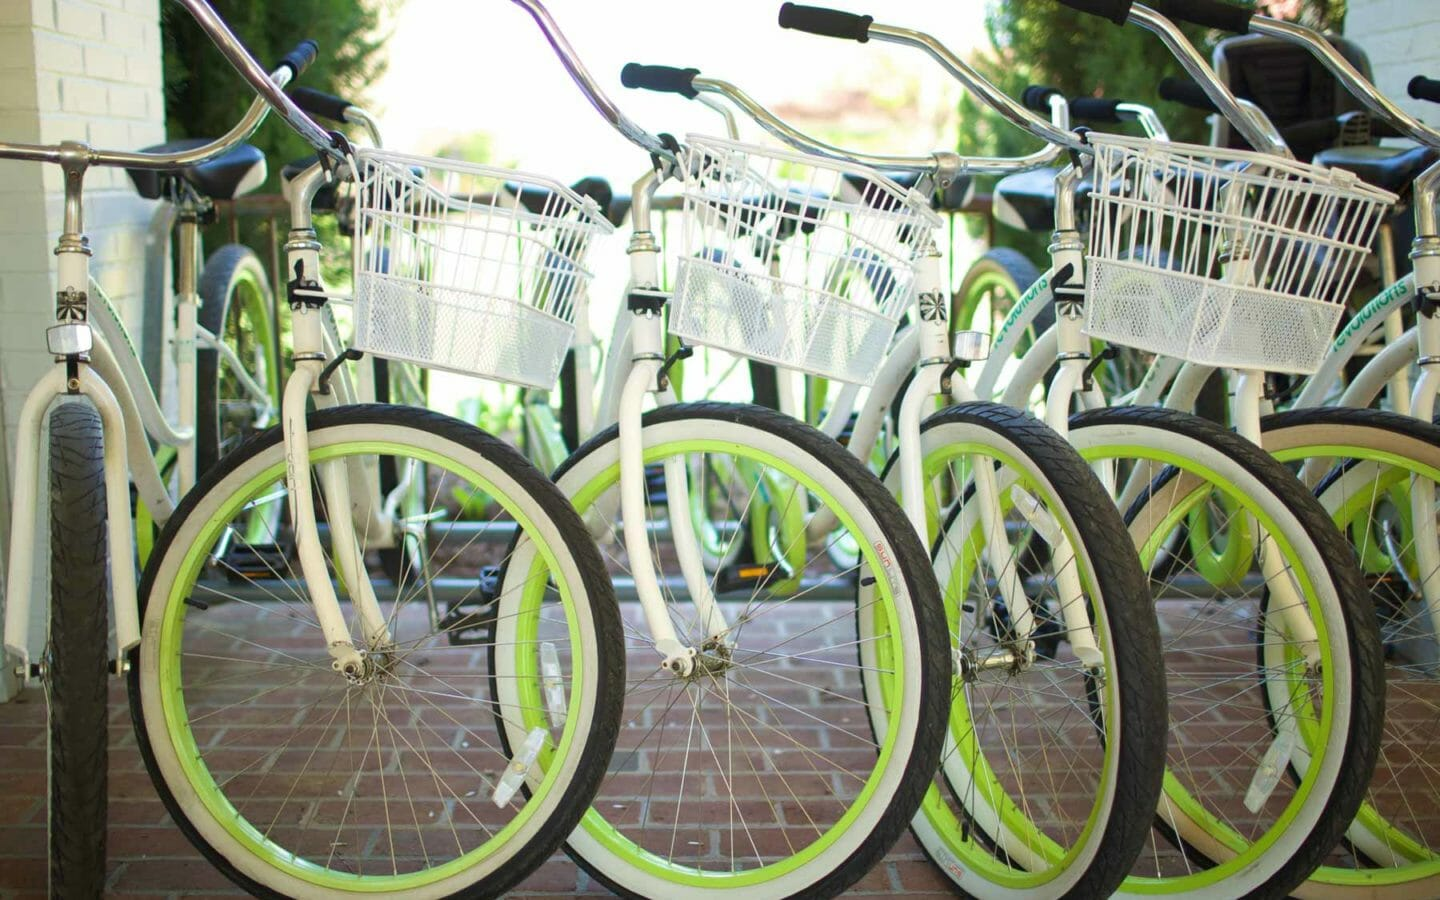 Bikes at Tides Inn, Virginia Resort